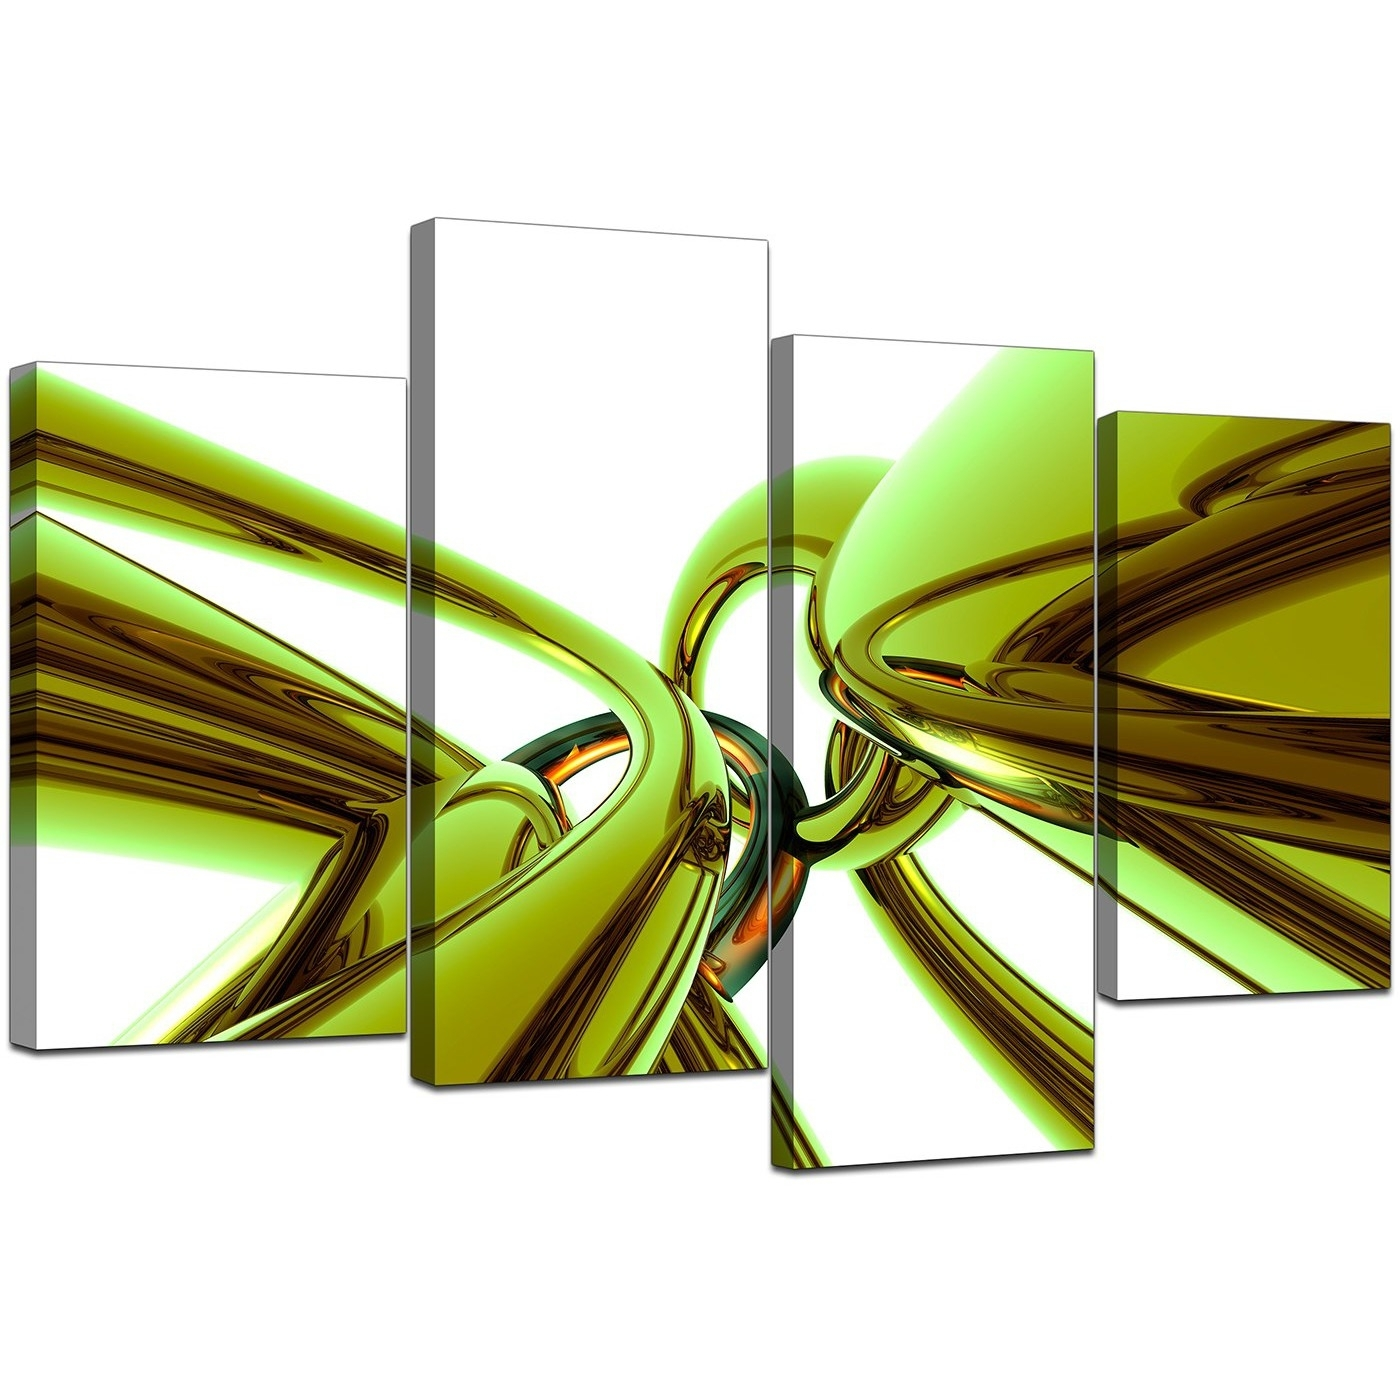 Abstract Canvas Wall Art In Green For Your Living Room – Set Of 4 Inside Most Up To Date Lime Green Canvas Wall Art (View 5 of 15)